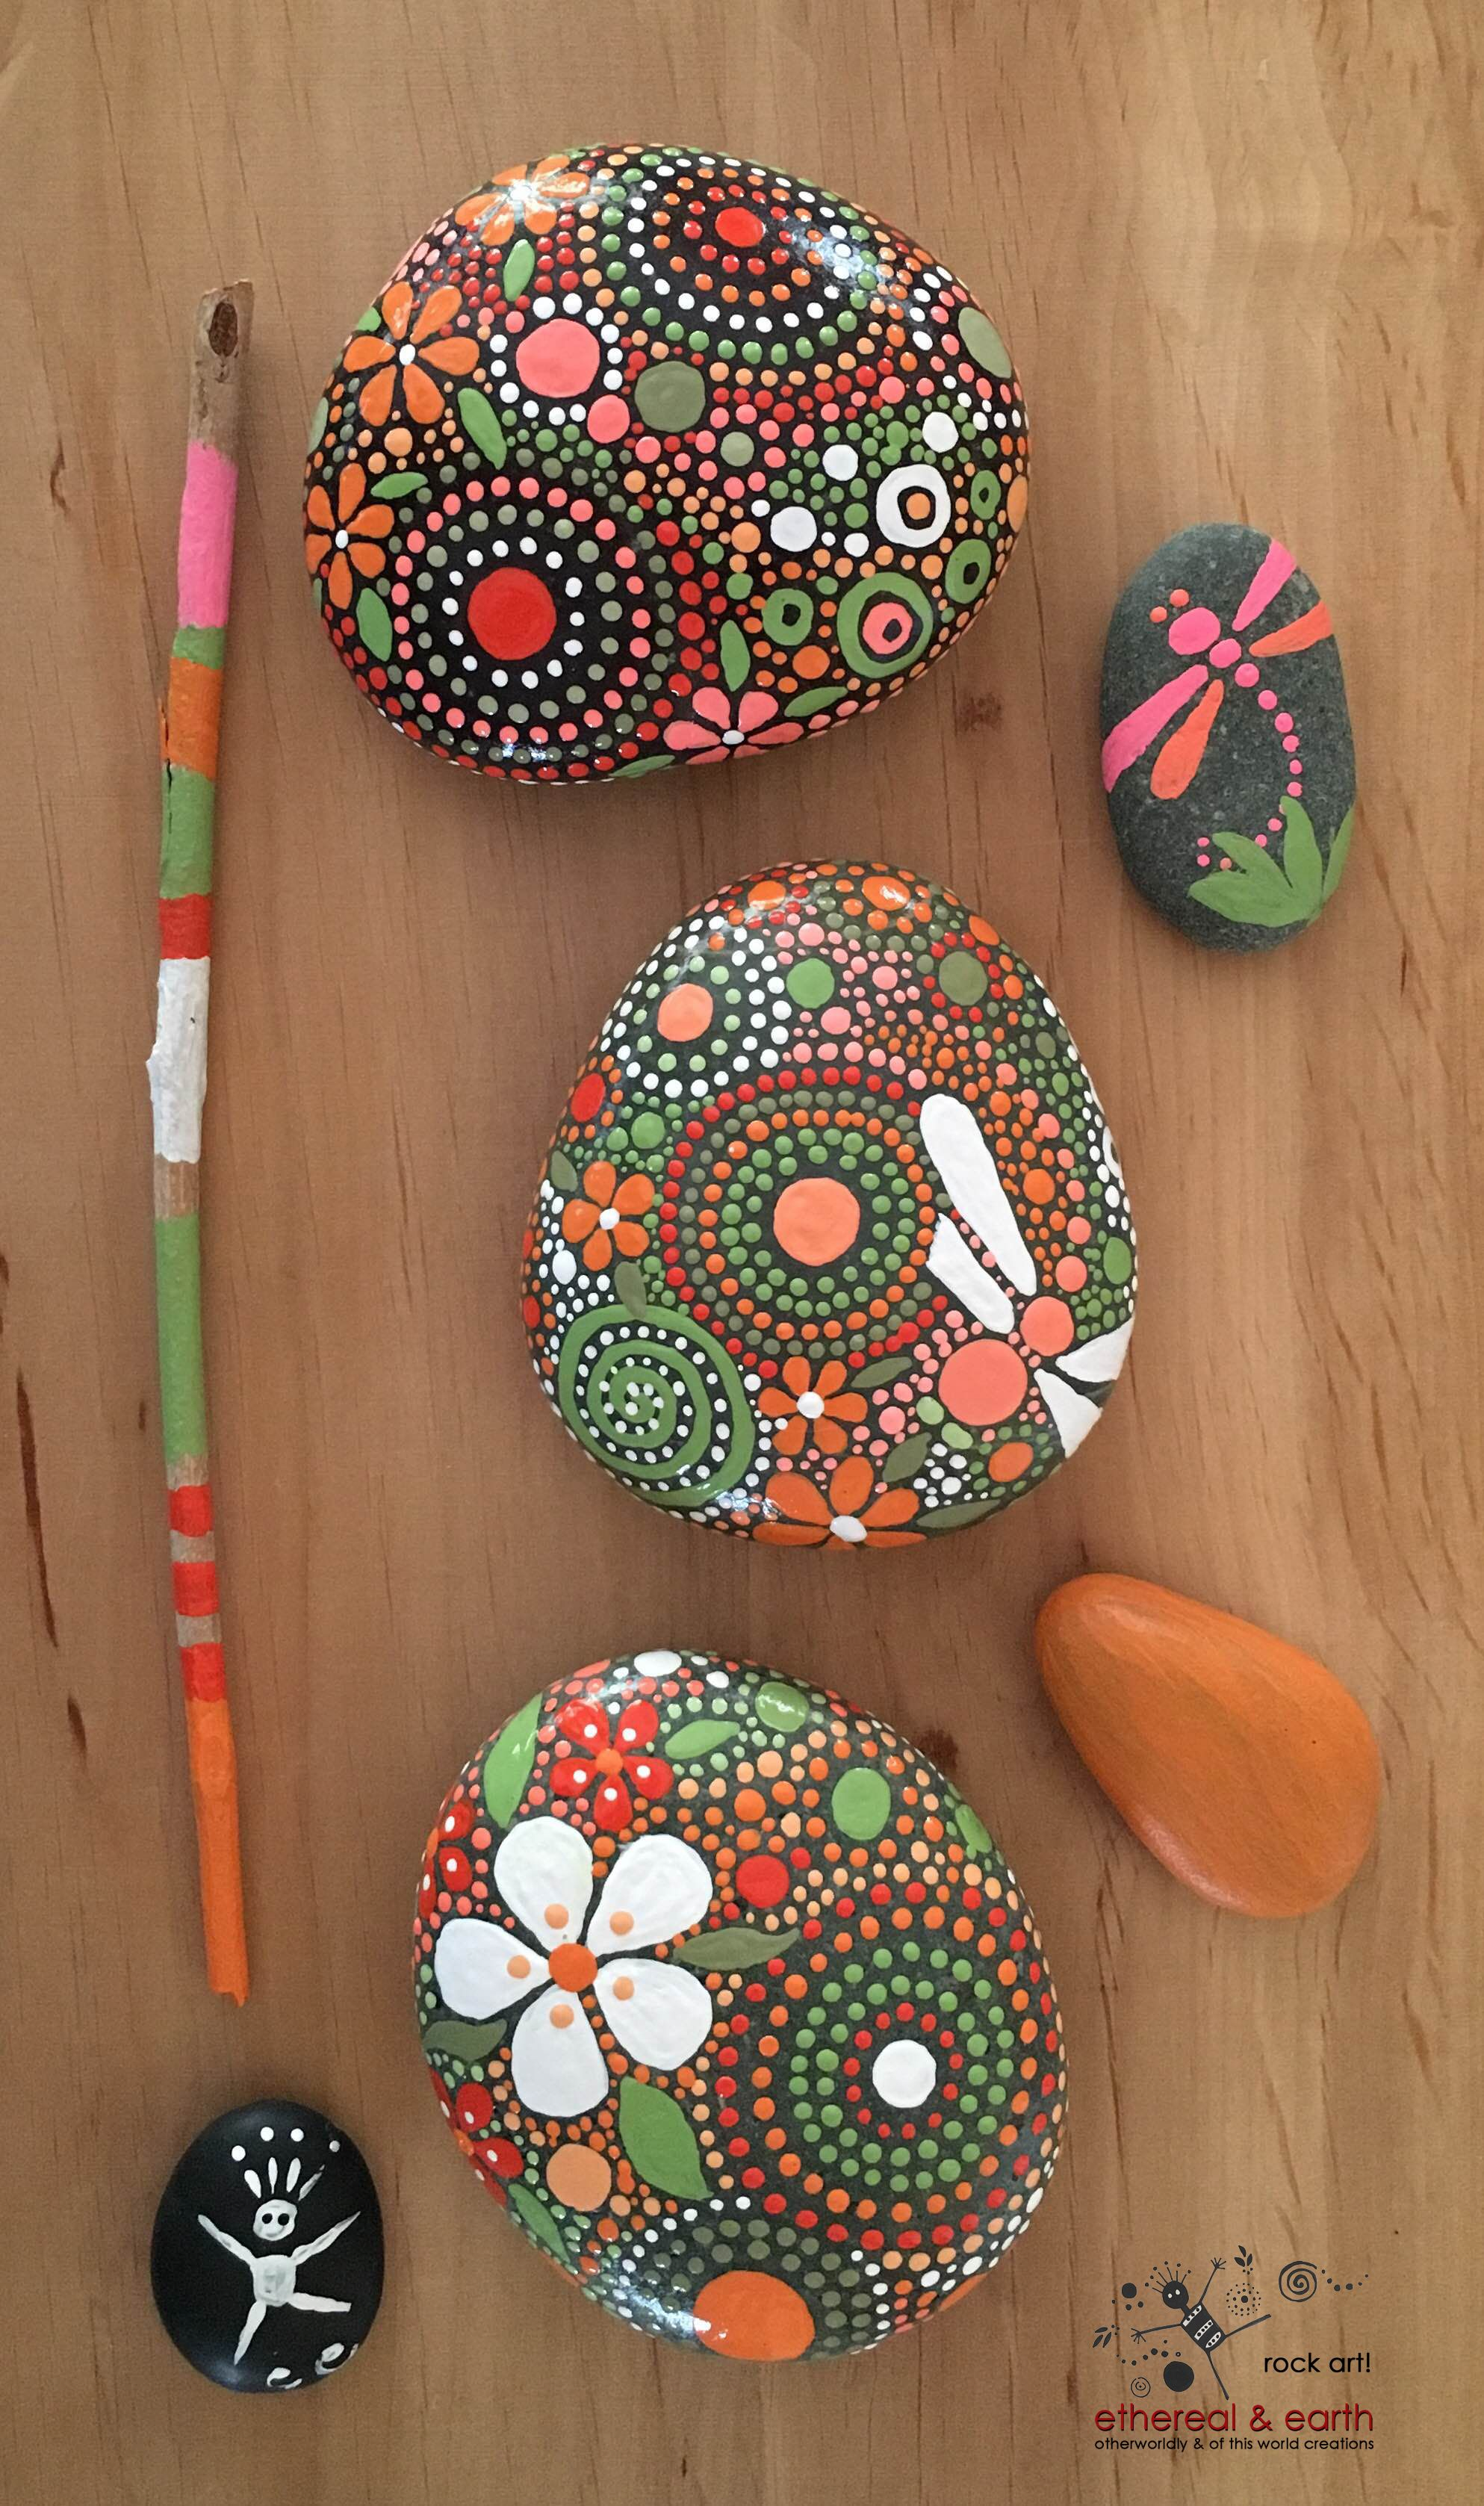 painted rocks hand painted stones mandala inspired design natural